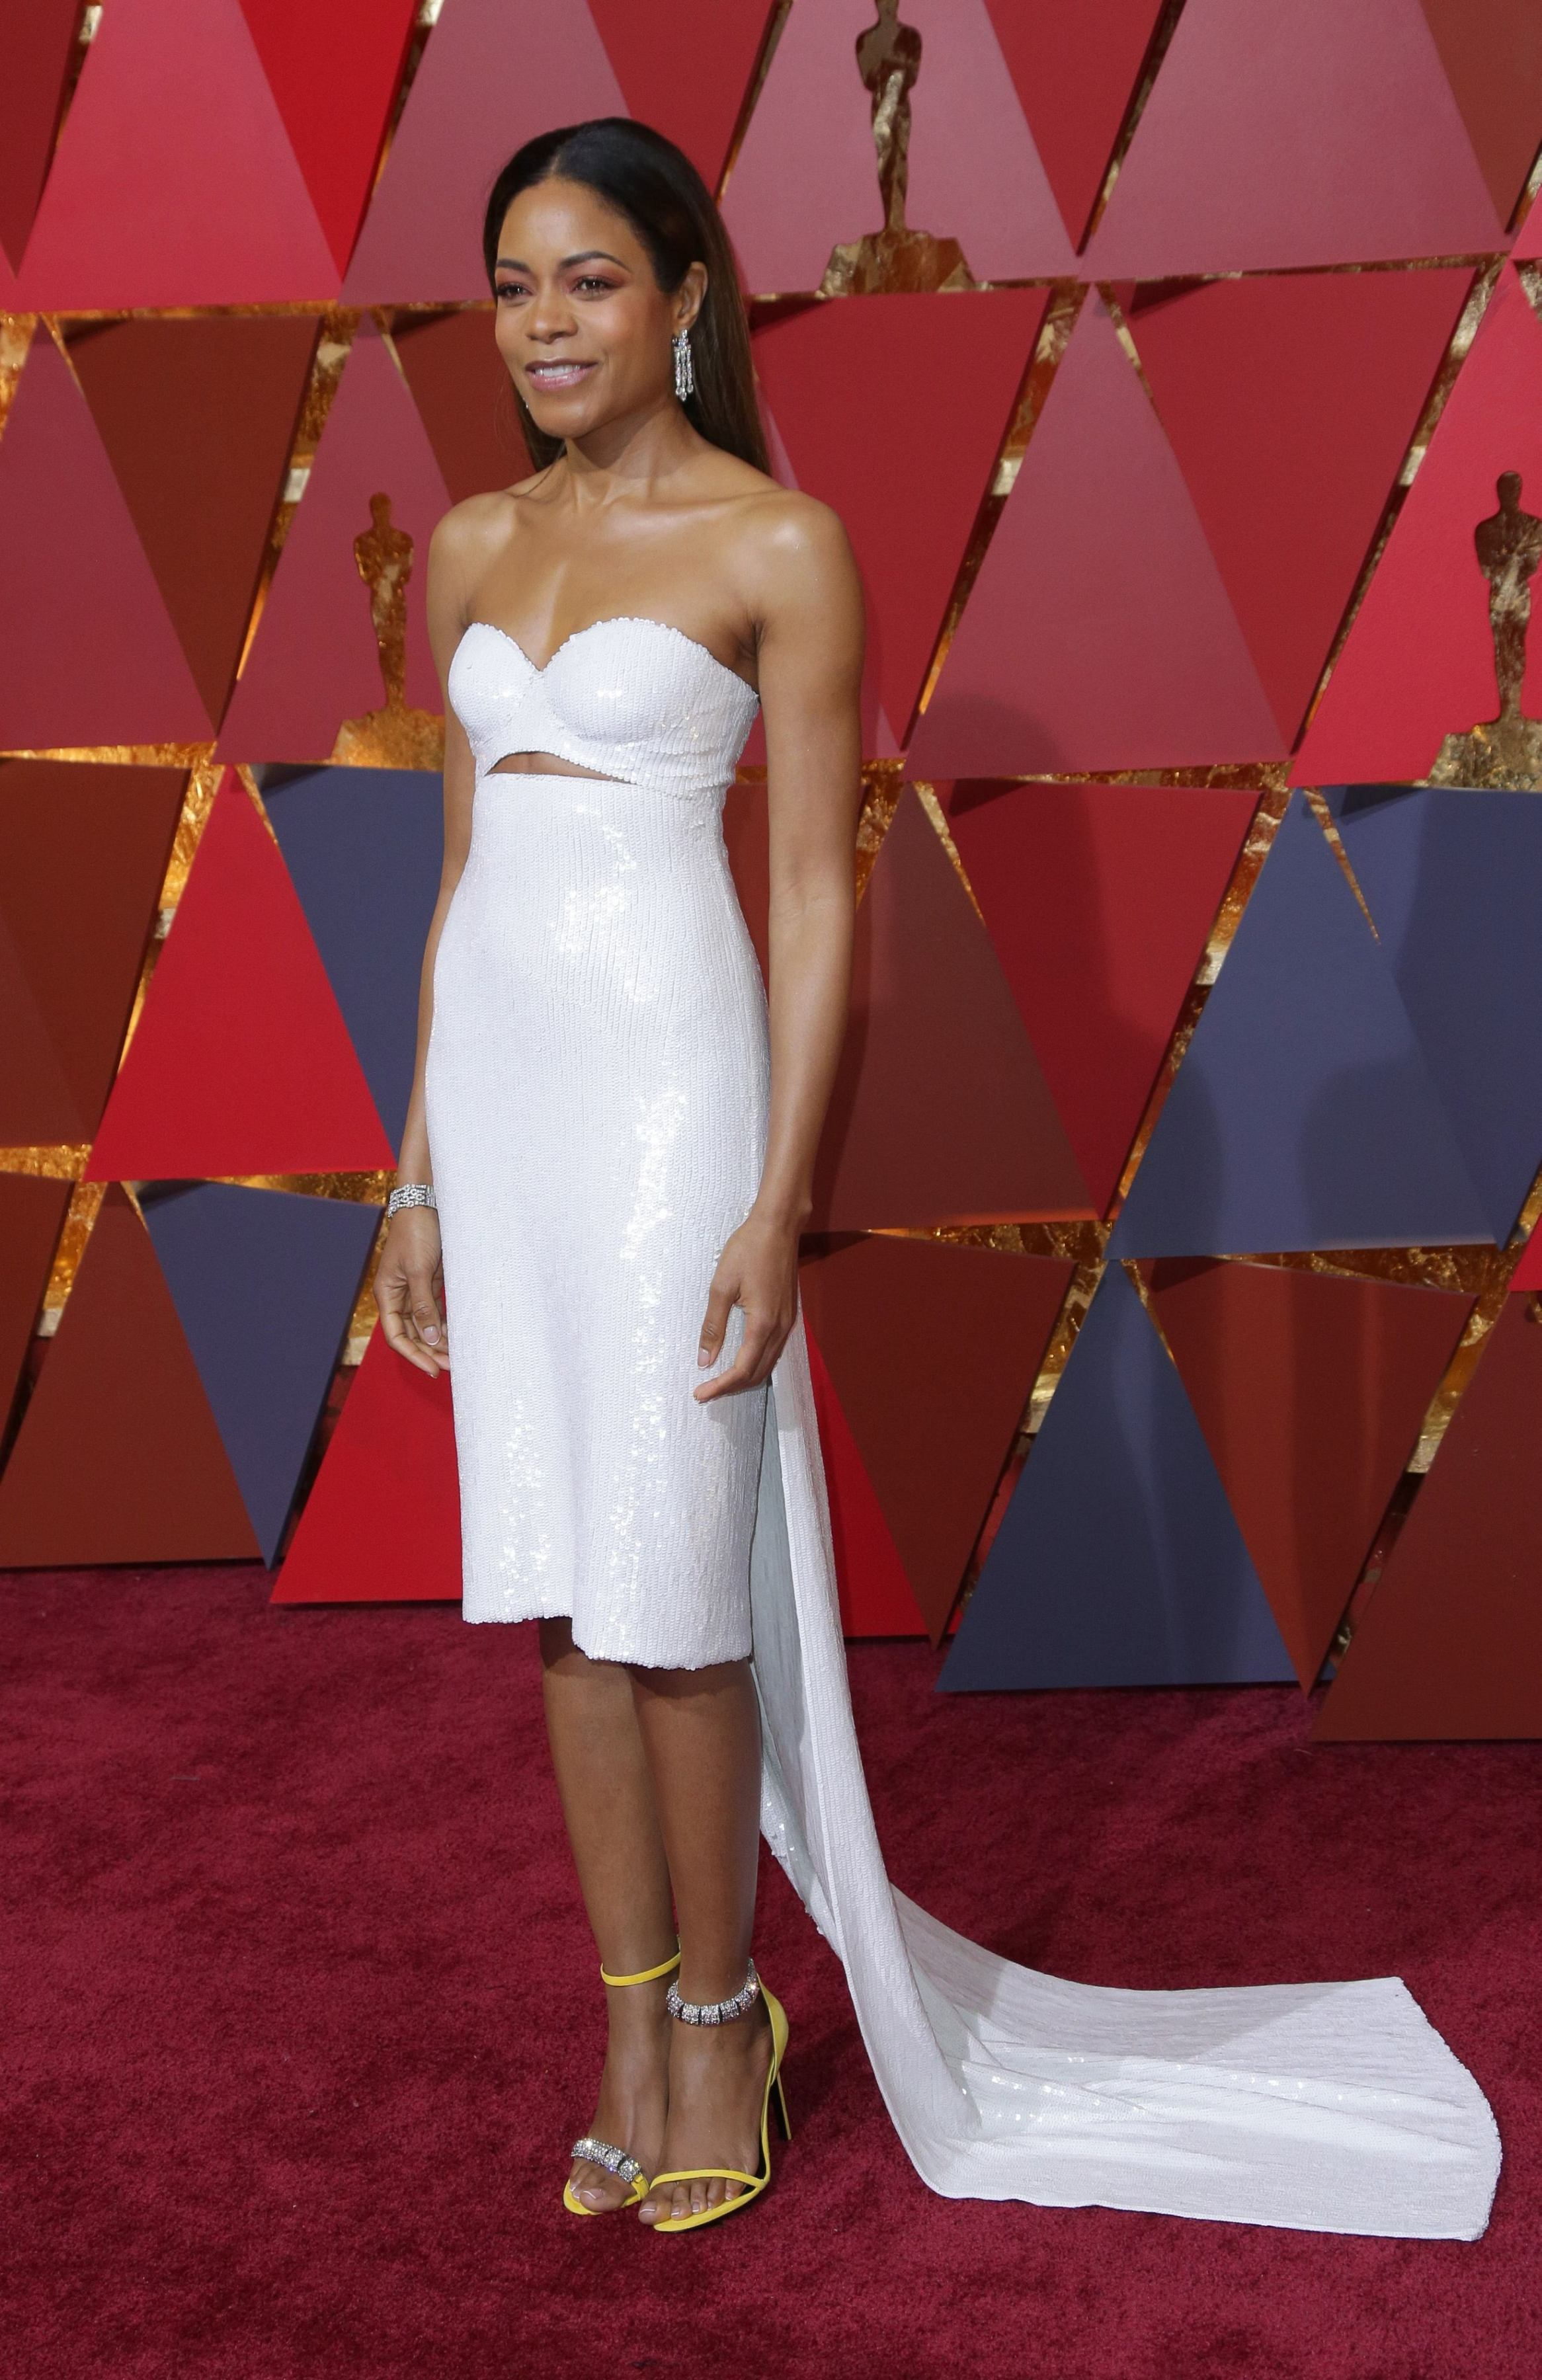 Mandatory Credit: Photo by Jim Smeal/BEI/Shutterstock (8434881it) Naomie Harris 89th Annual Academy Awards, Arrivals, Los Angeles, USA - 26 Feb 2017